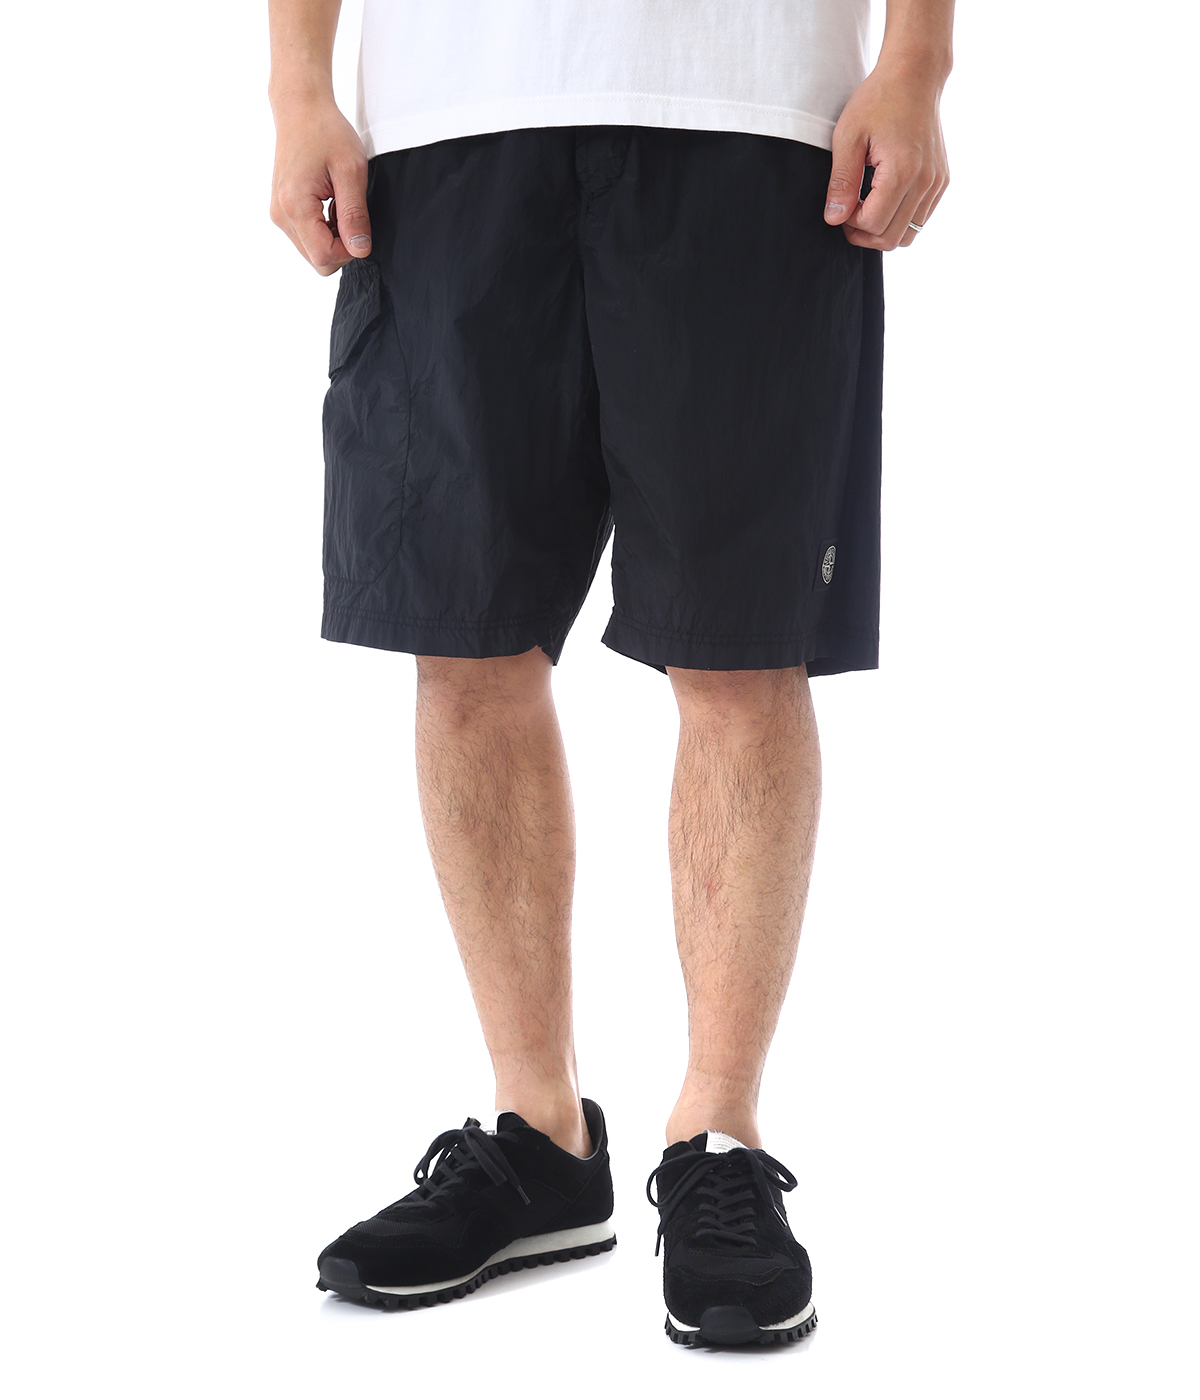 NYLON METAL SWIM SHORTS